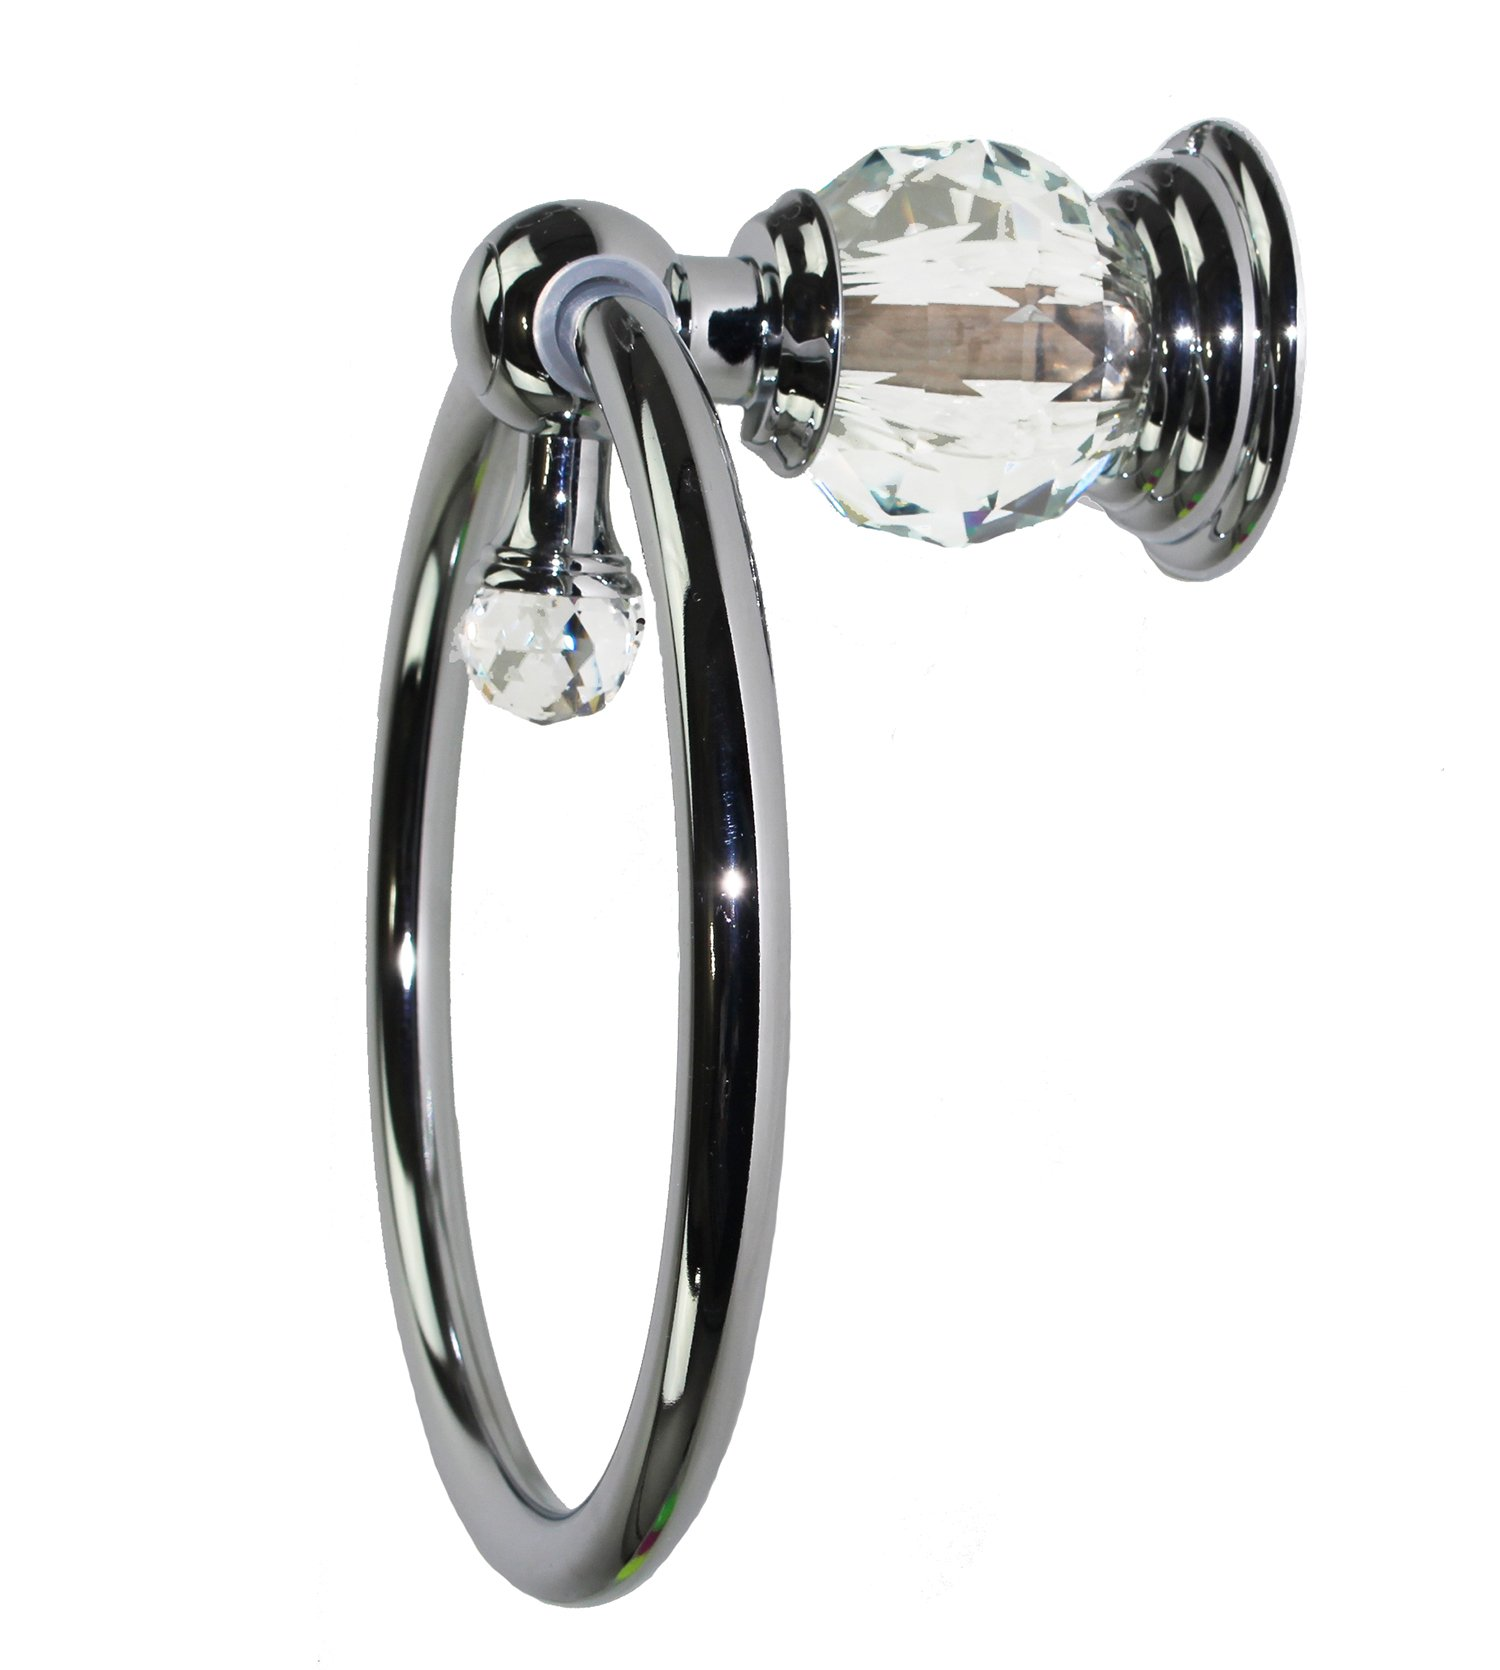 Decor Hut Chrome & Crystal Towel Ring Vanity Towel Holder Wall Mounted with Screws Included Round Silver By by Decor Hut